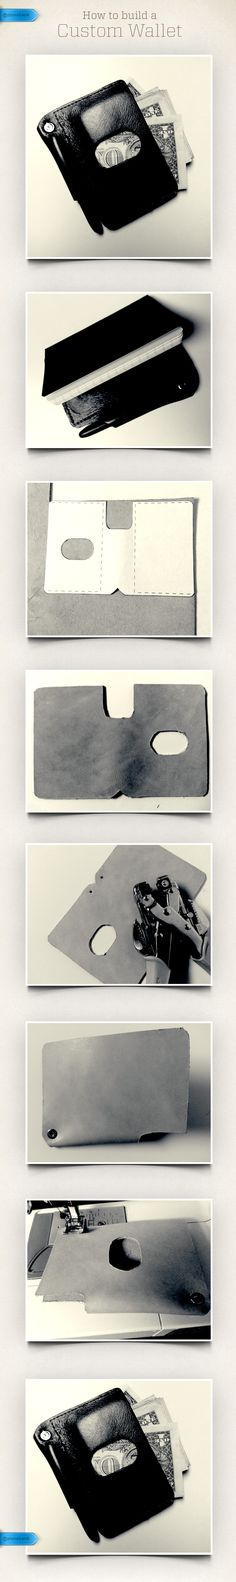 """DIY Wallet  MATERIALS: 8""""x5"""" inch piece of leather Craft punch Heavy duty needle and thread  1. Print and cut out template. 2. Trace template onto leather. 3. Cut out wallet. 4. Fold and punch a hole in bottom corner. This will hold the pen in place. 5. Sew the sides and bottom above the pen. This may take more than a standard sewing needle. 6. Include a small Moleskin notebook and you have a slim wallet that can hold all your cash, cards and notes.  Approximate Cost: $10.00"""